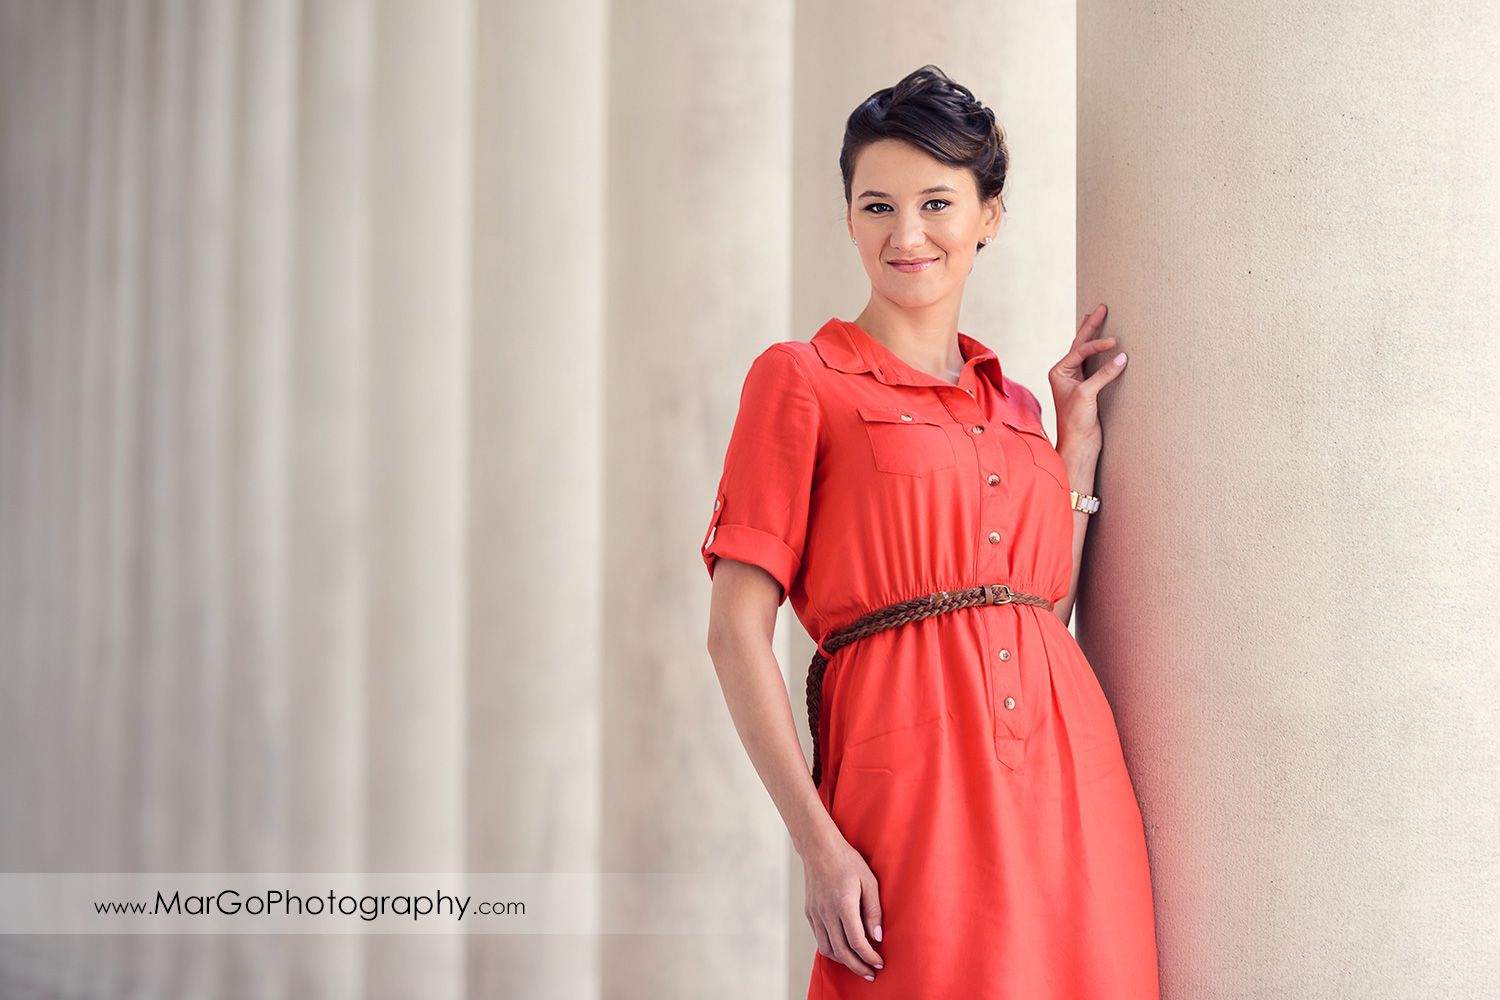 3/4 portrait of woman in red dress standing next to white columns during engagement session at San Francisco Legion of Honor